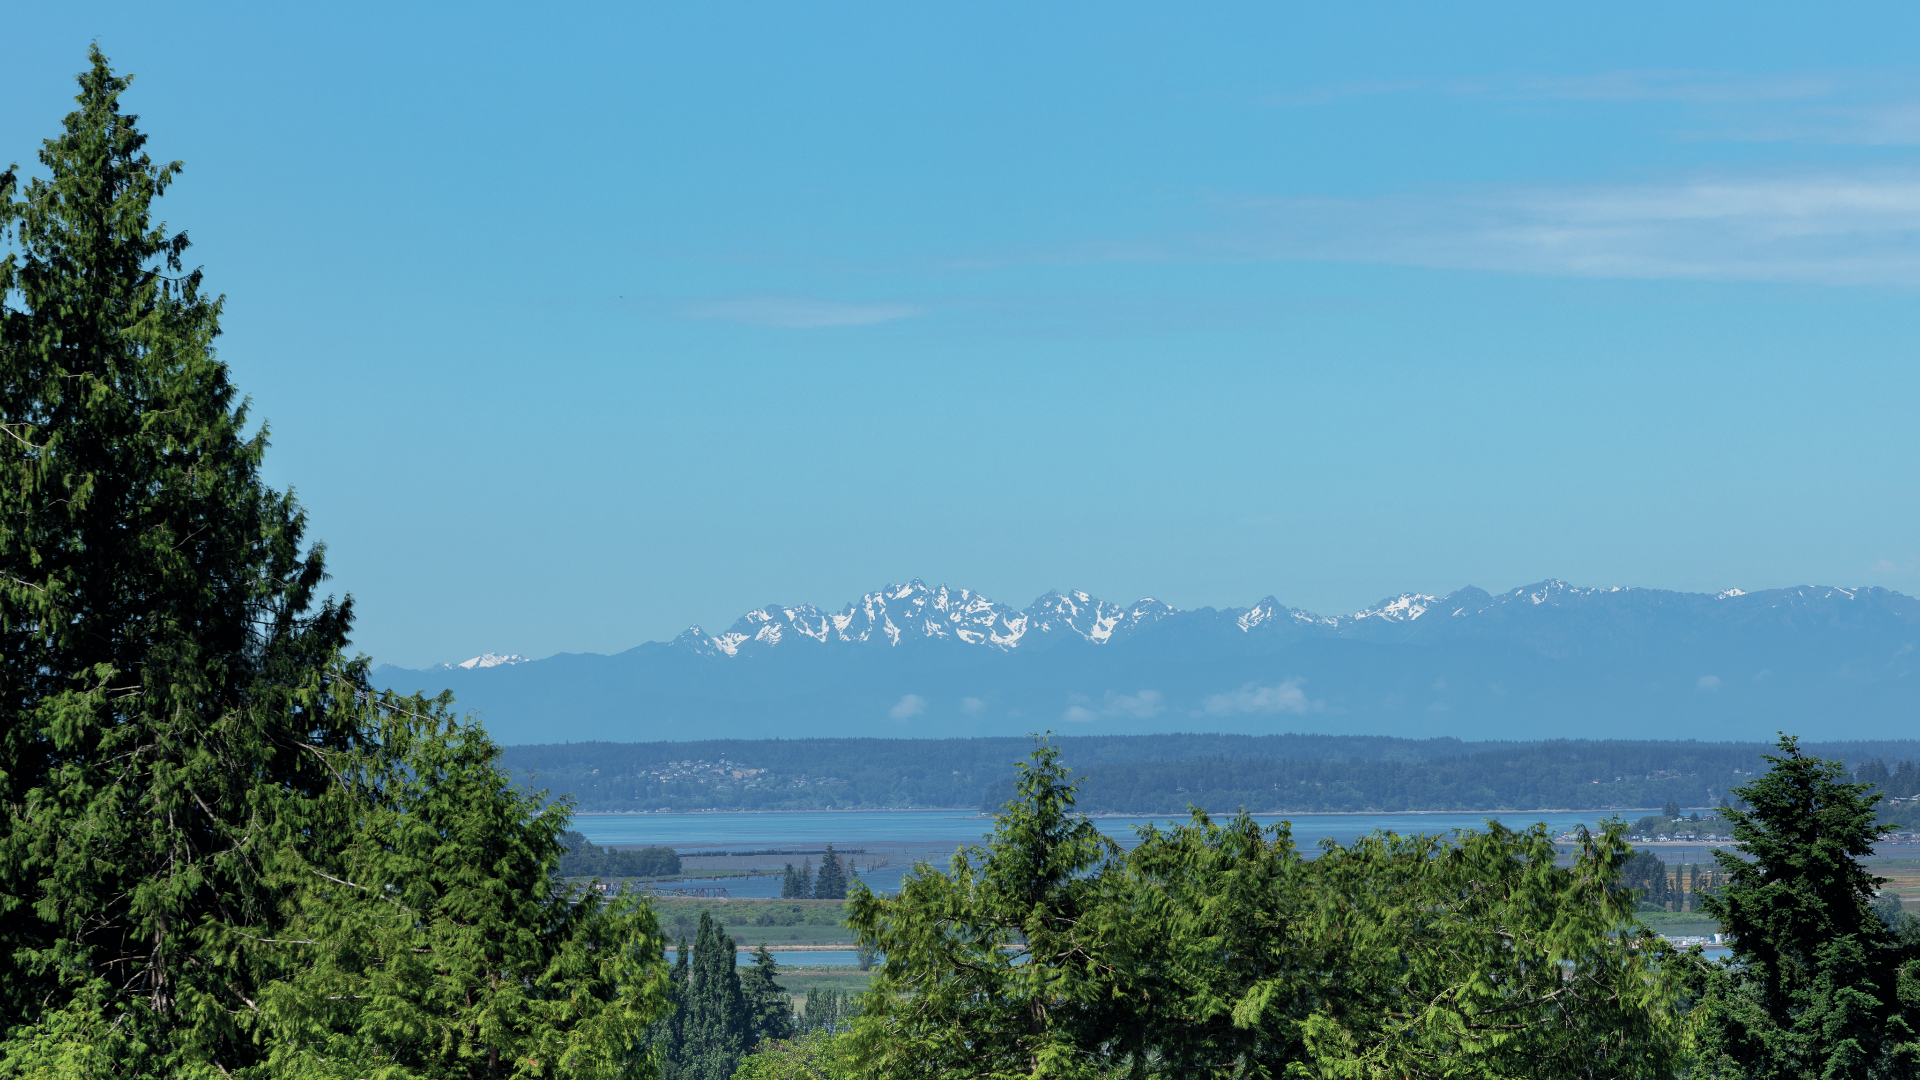 Lovely views of the Olympic Mountains and Puget Sound